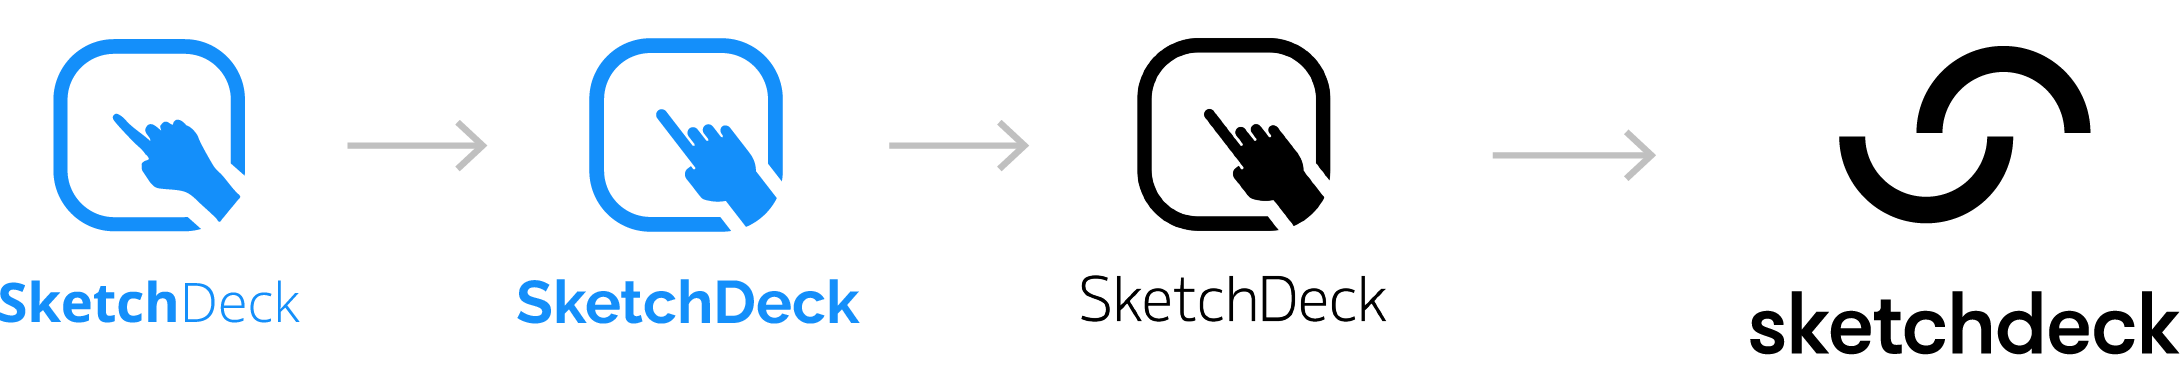 SketchDeck logo evolution